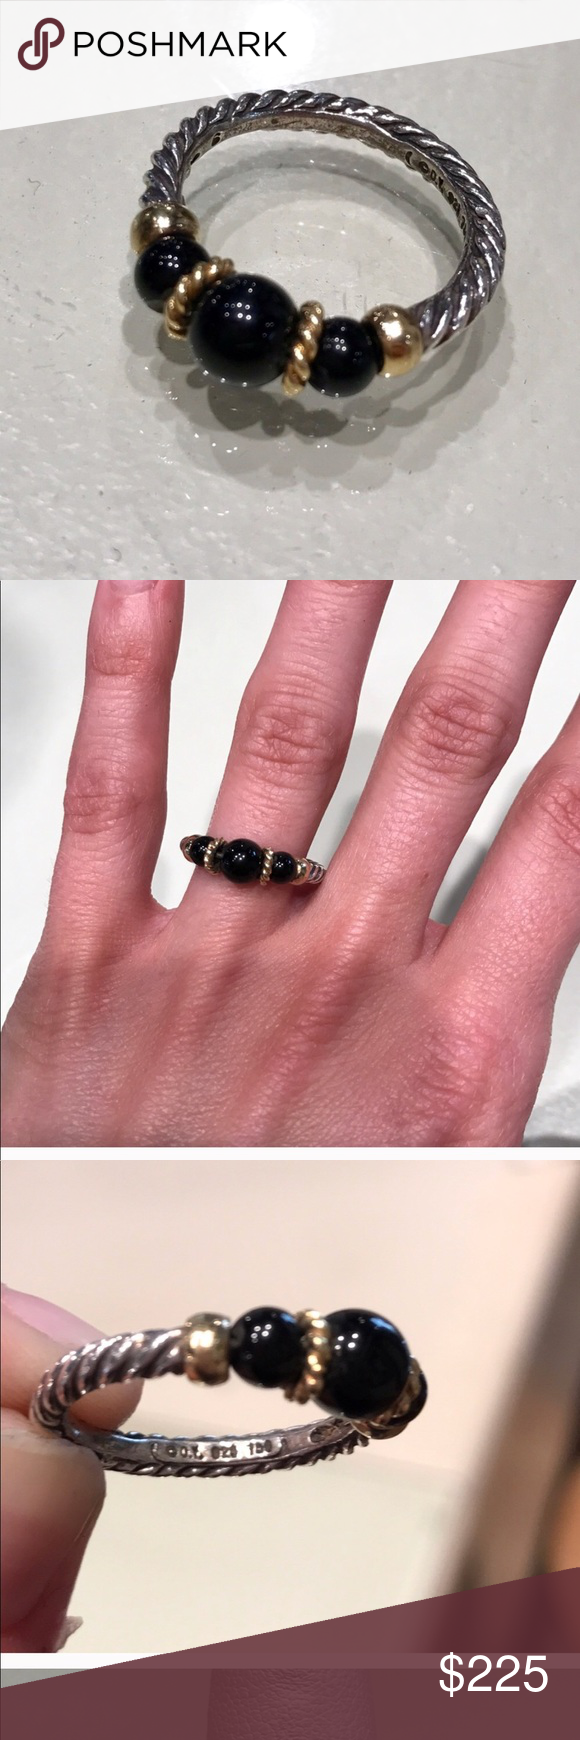 authentic David Yurman cable ring